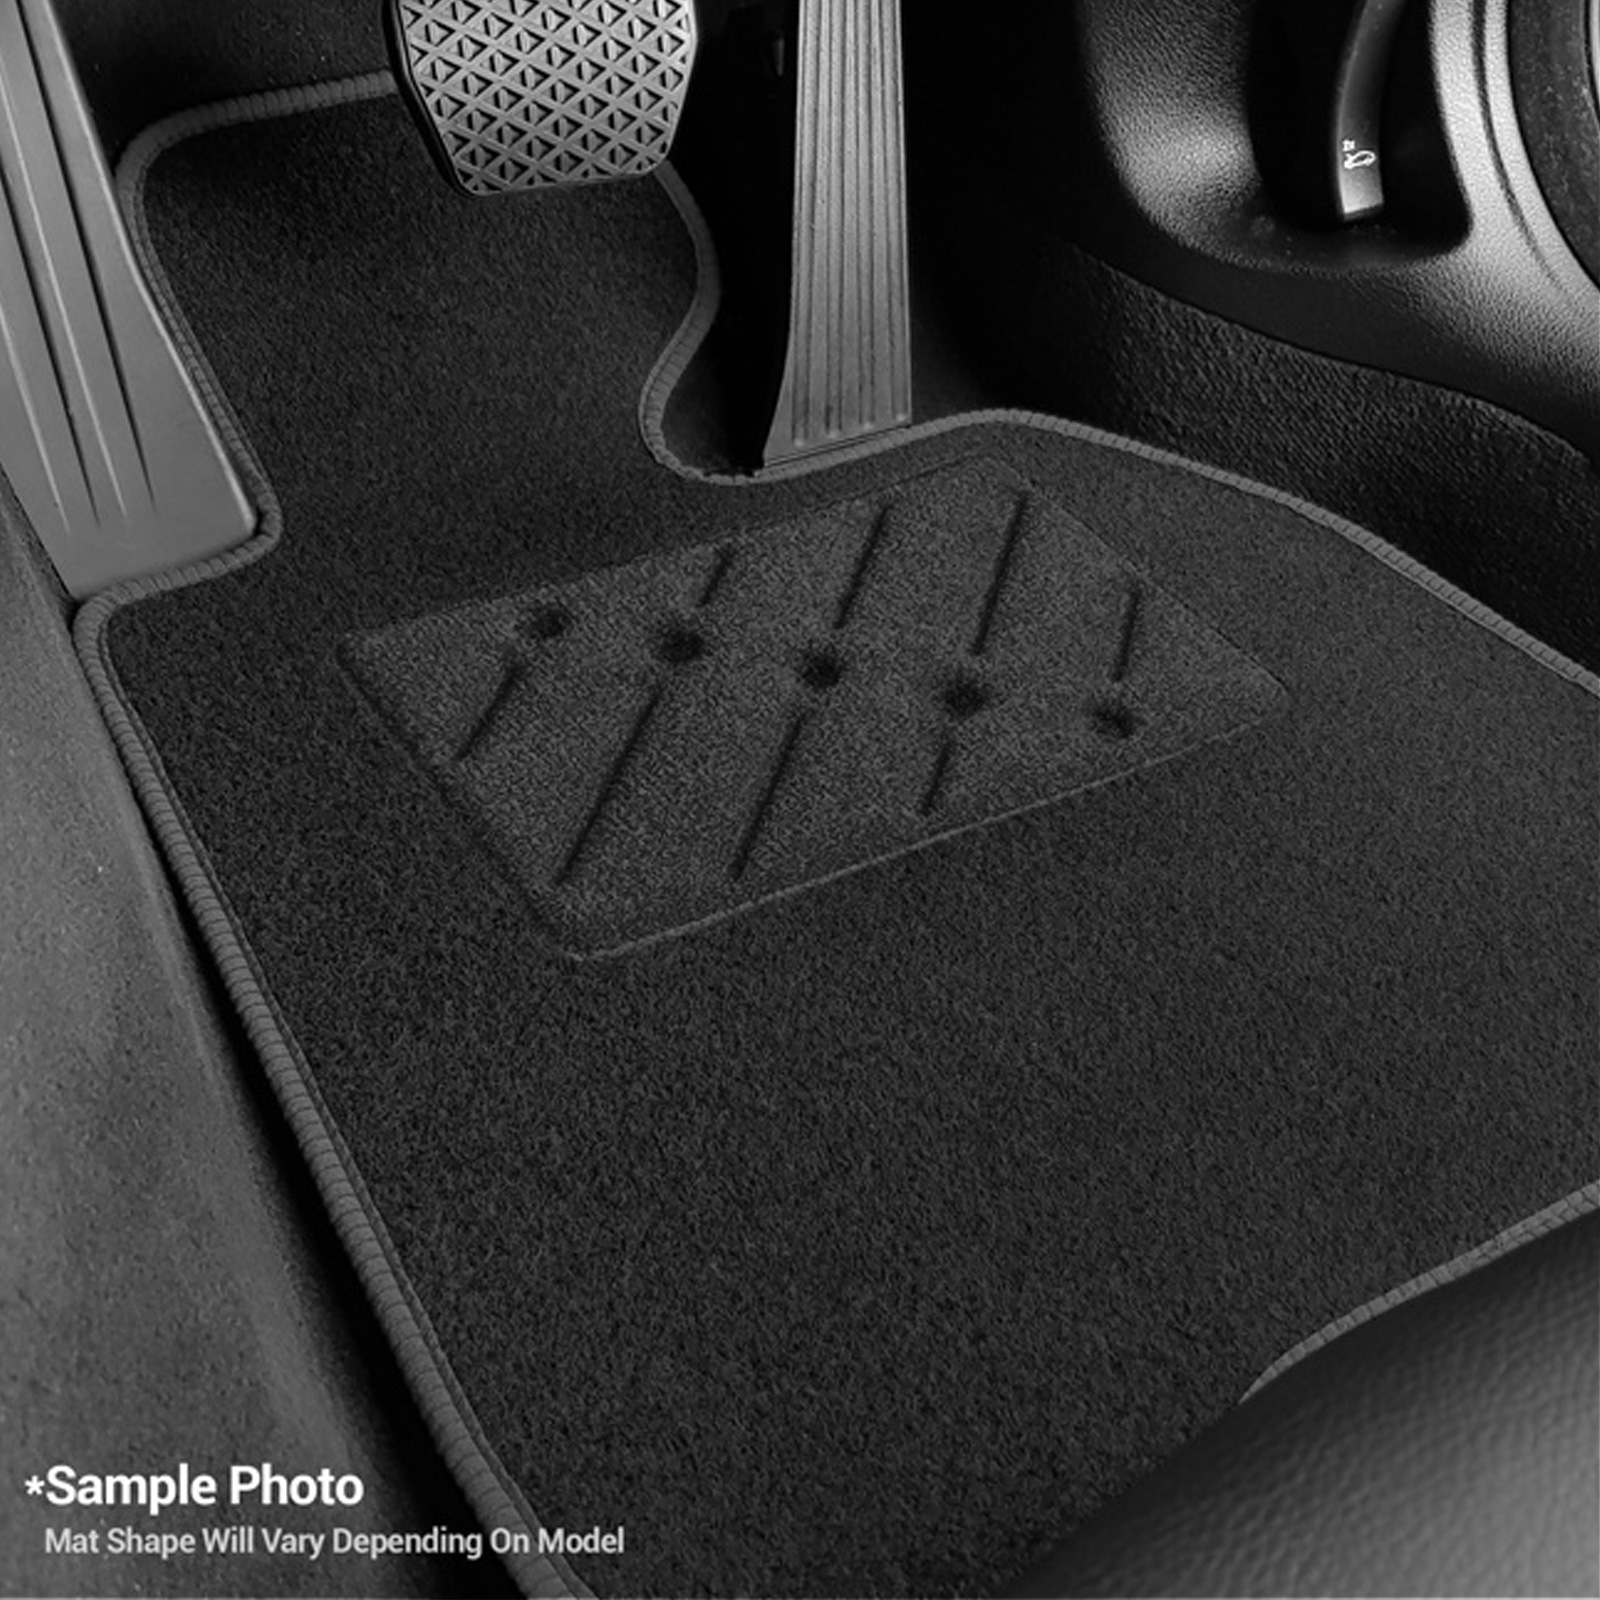 3 x clips 11 on Tailored Car Mats GREY ANTHRACITE KIA RIO